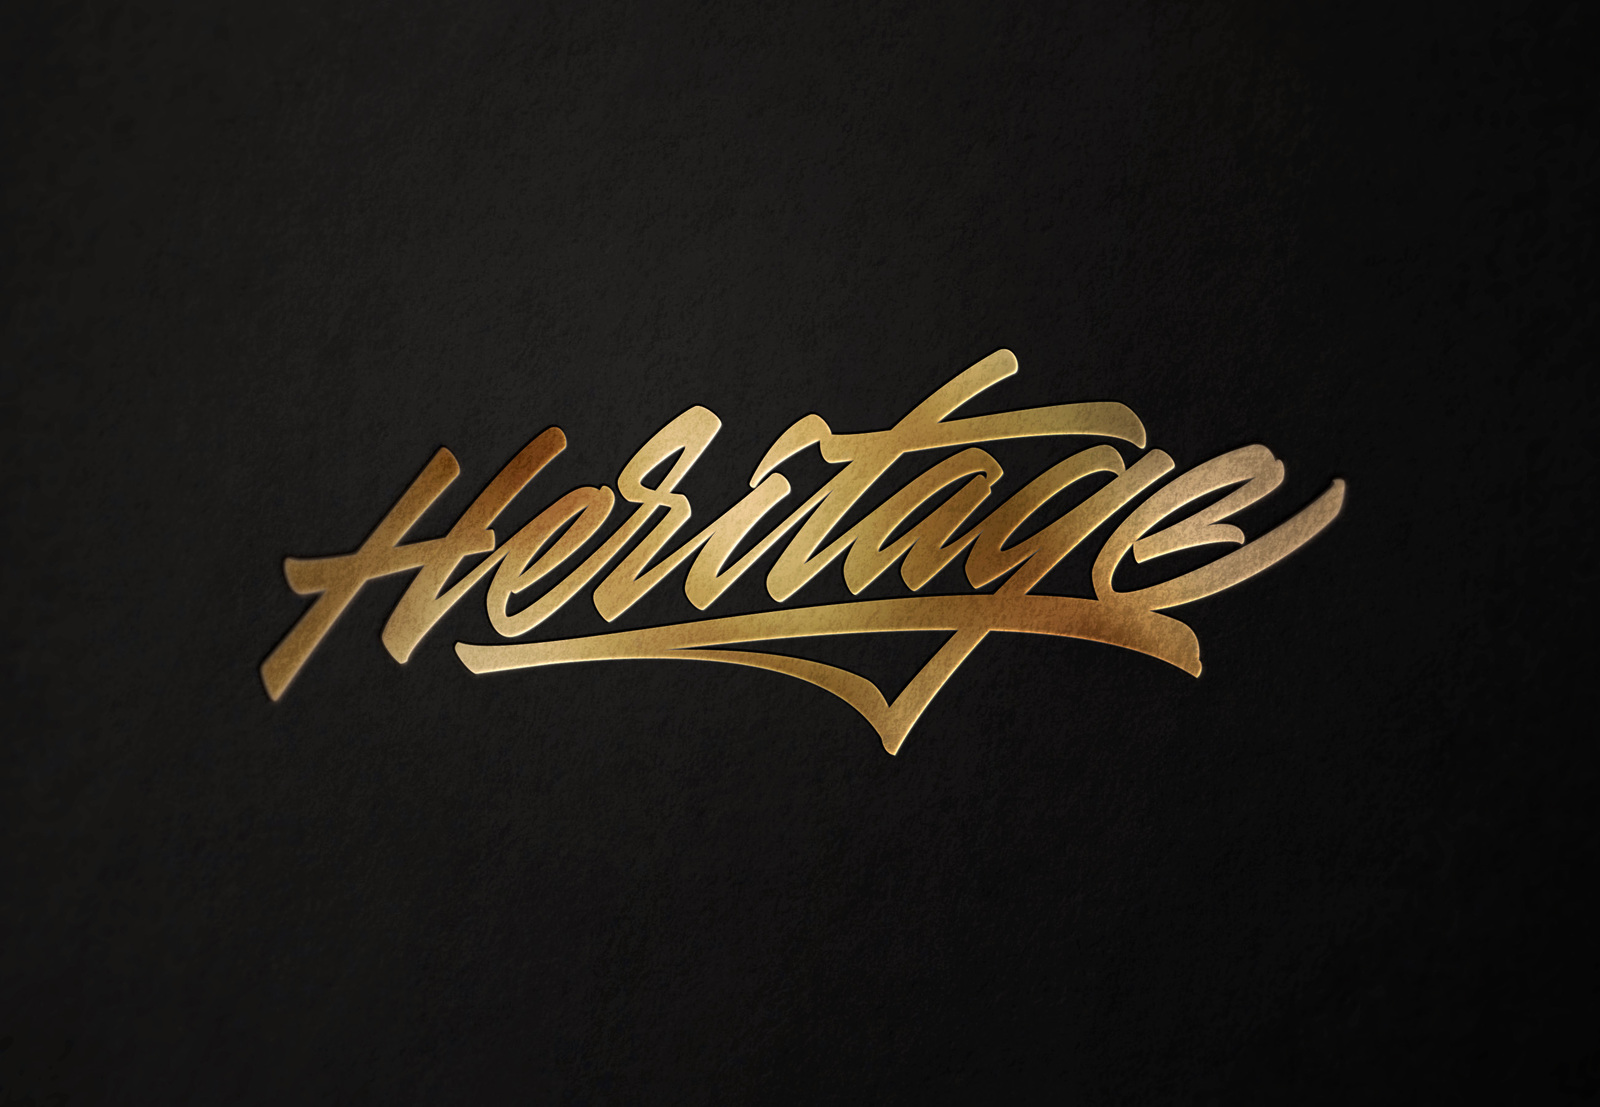 Heritage hand made calligraphic lettering-logotype in original style